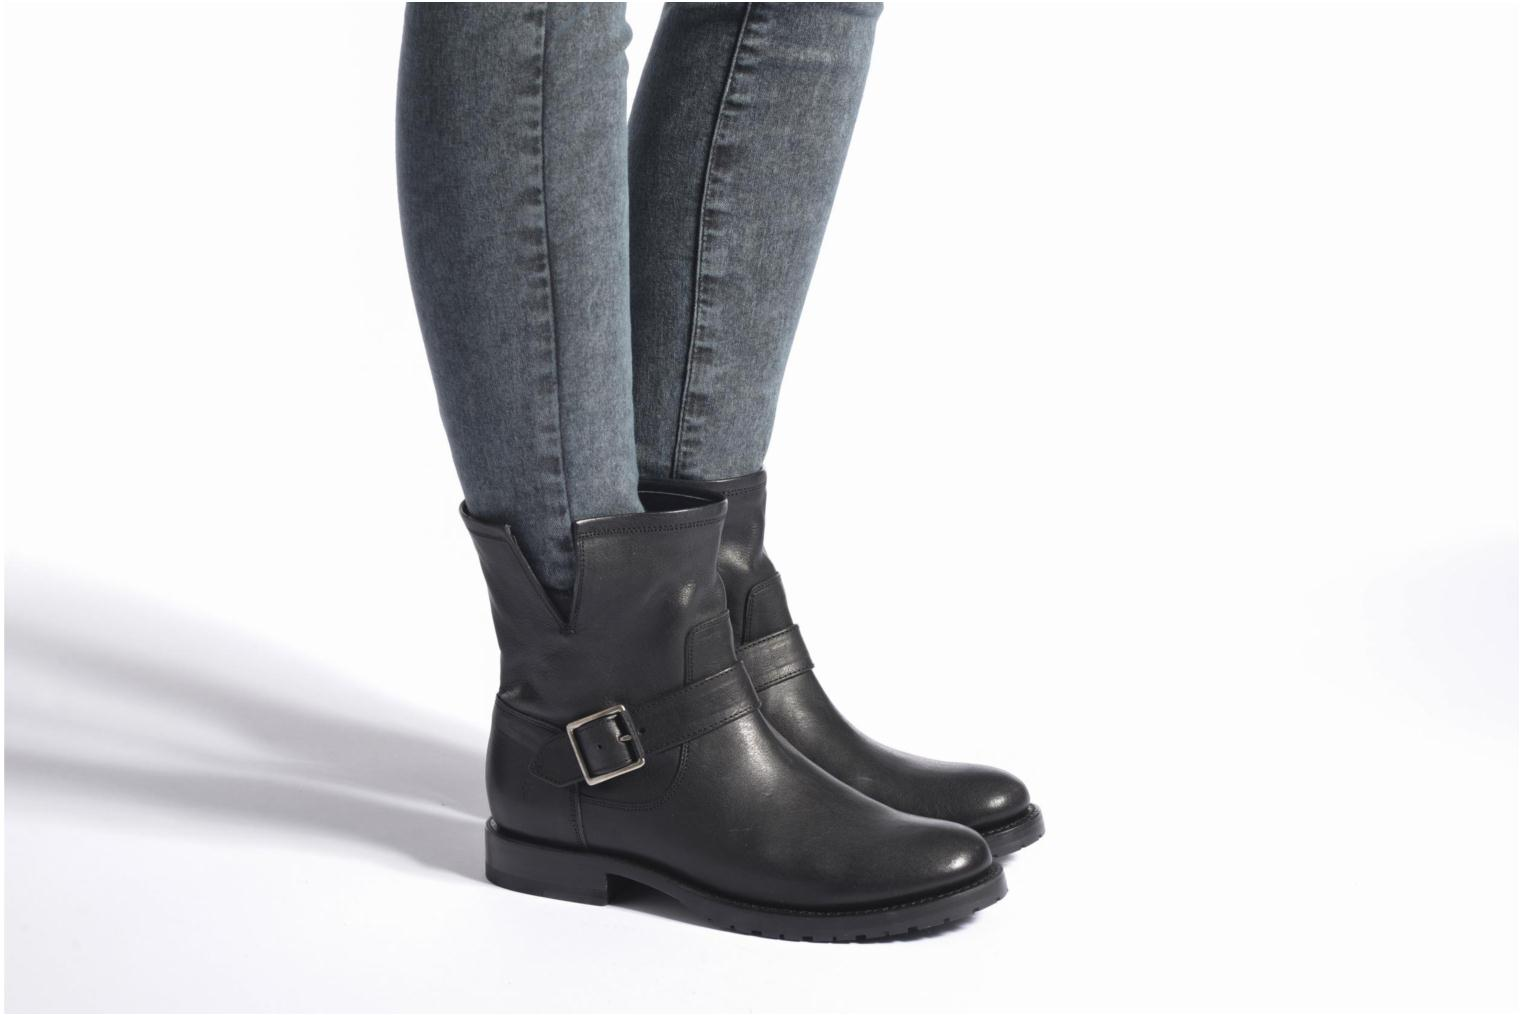 Bottines et boots Frye Natalie Short Engineer Noir vue bas / vue portée sac